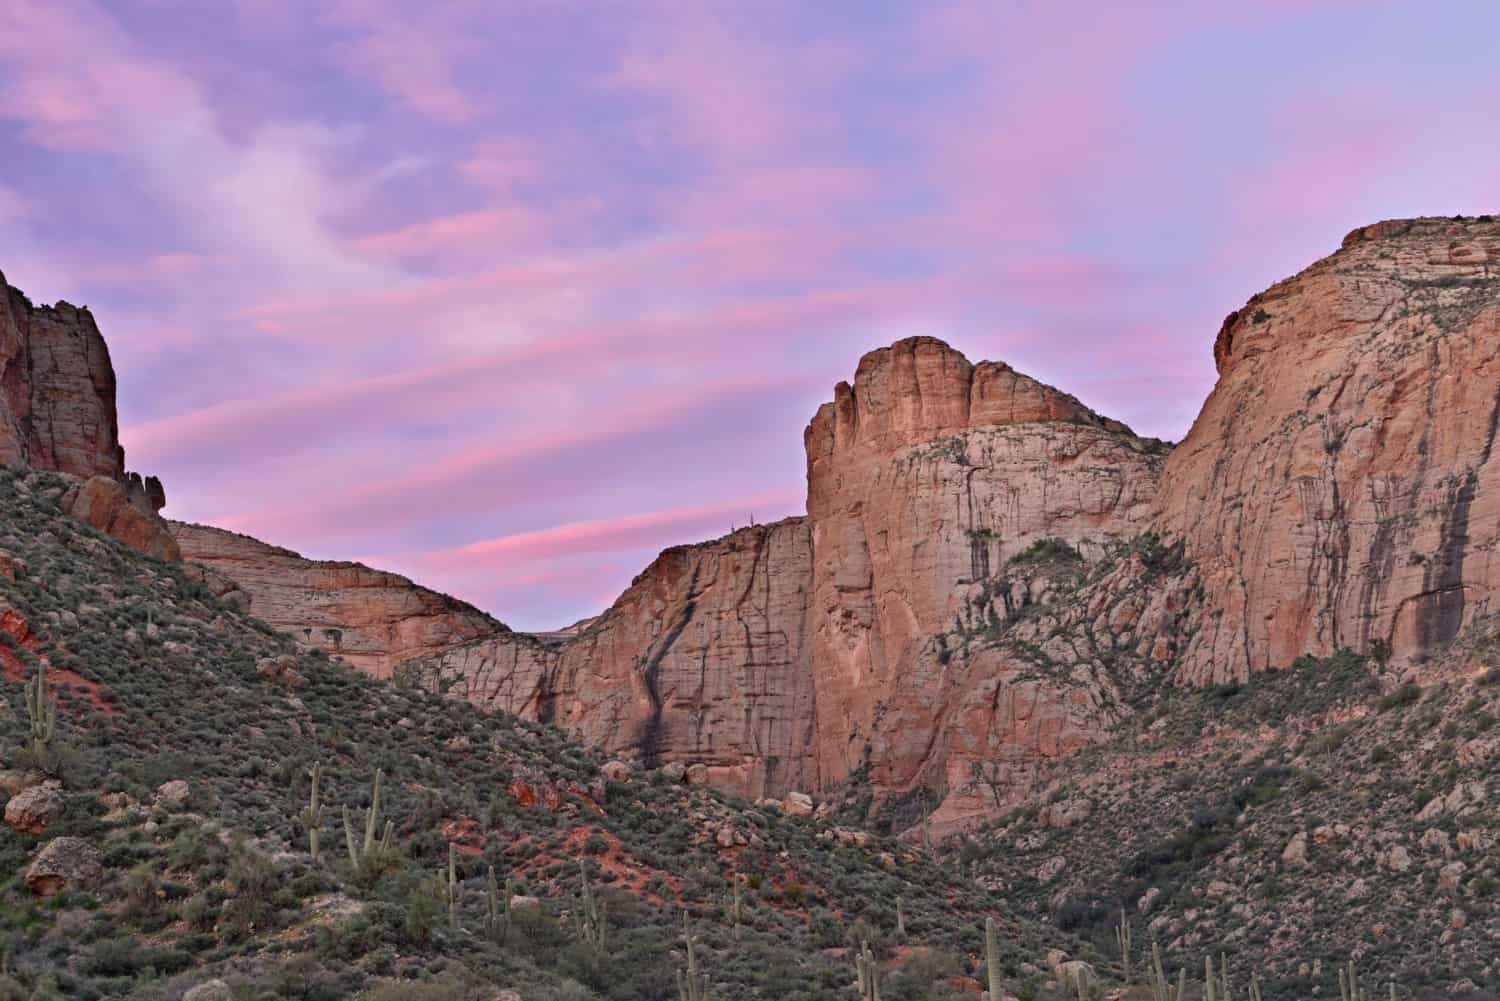 Twilight on the Apache Trail in the Tonto National Forest in Arizona